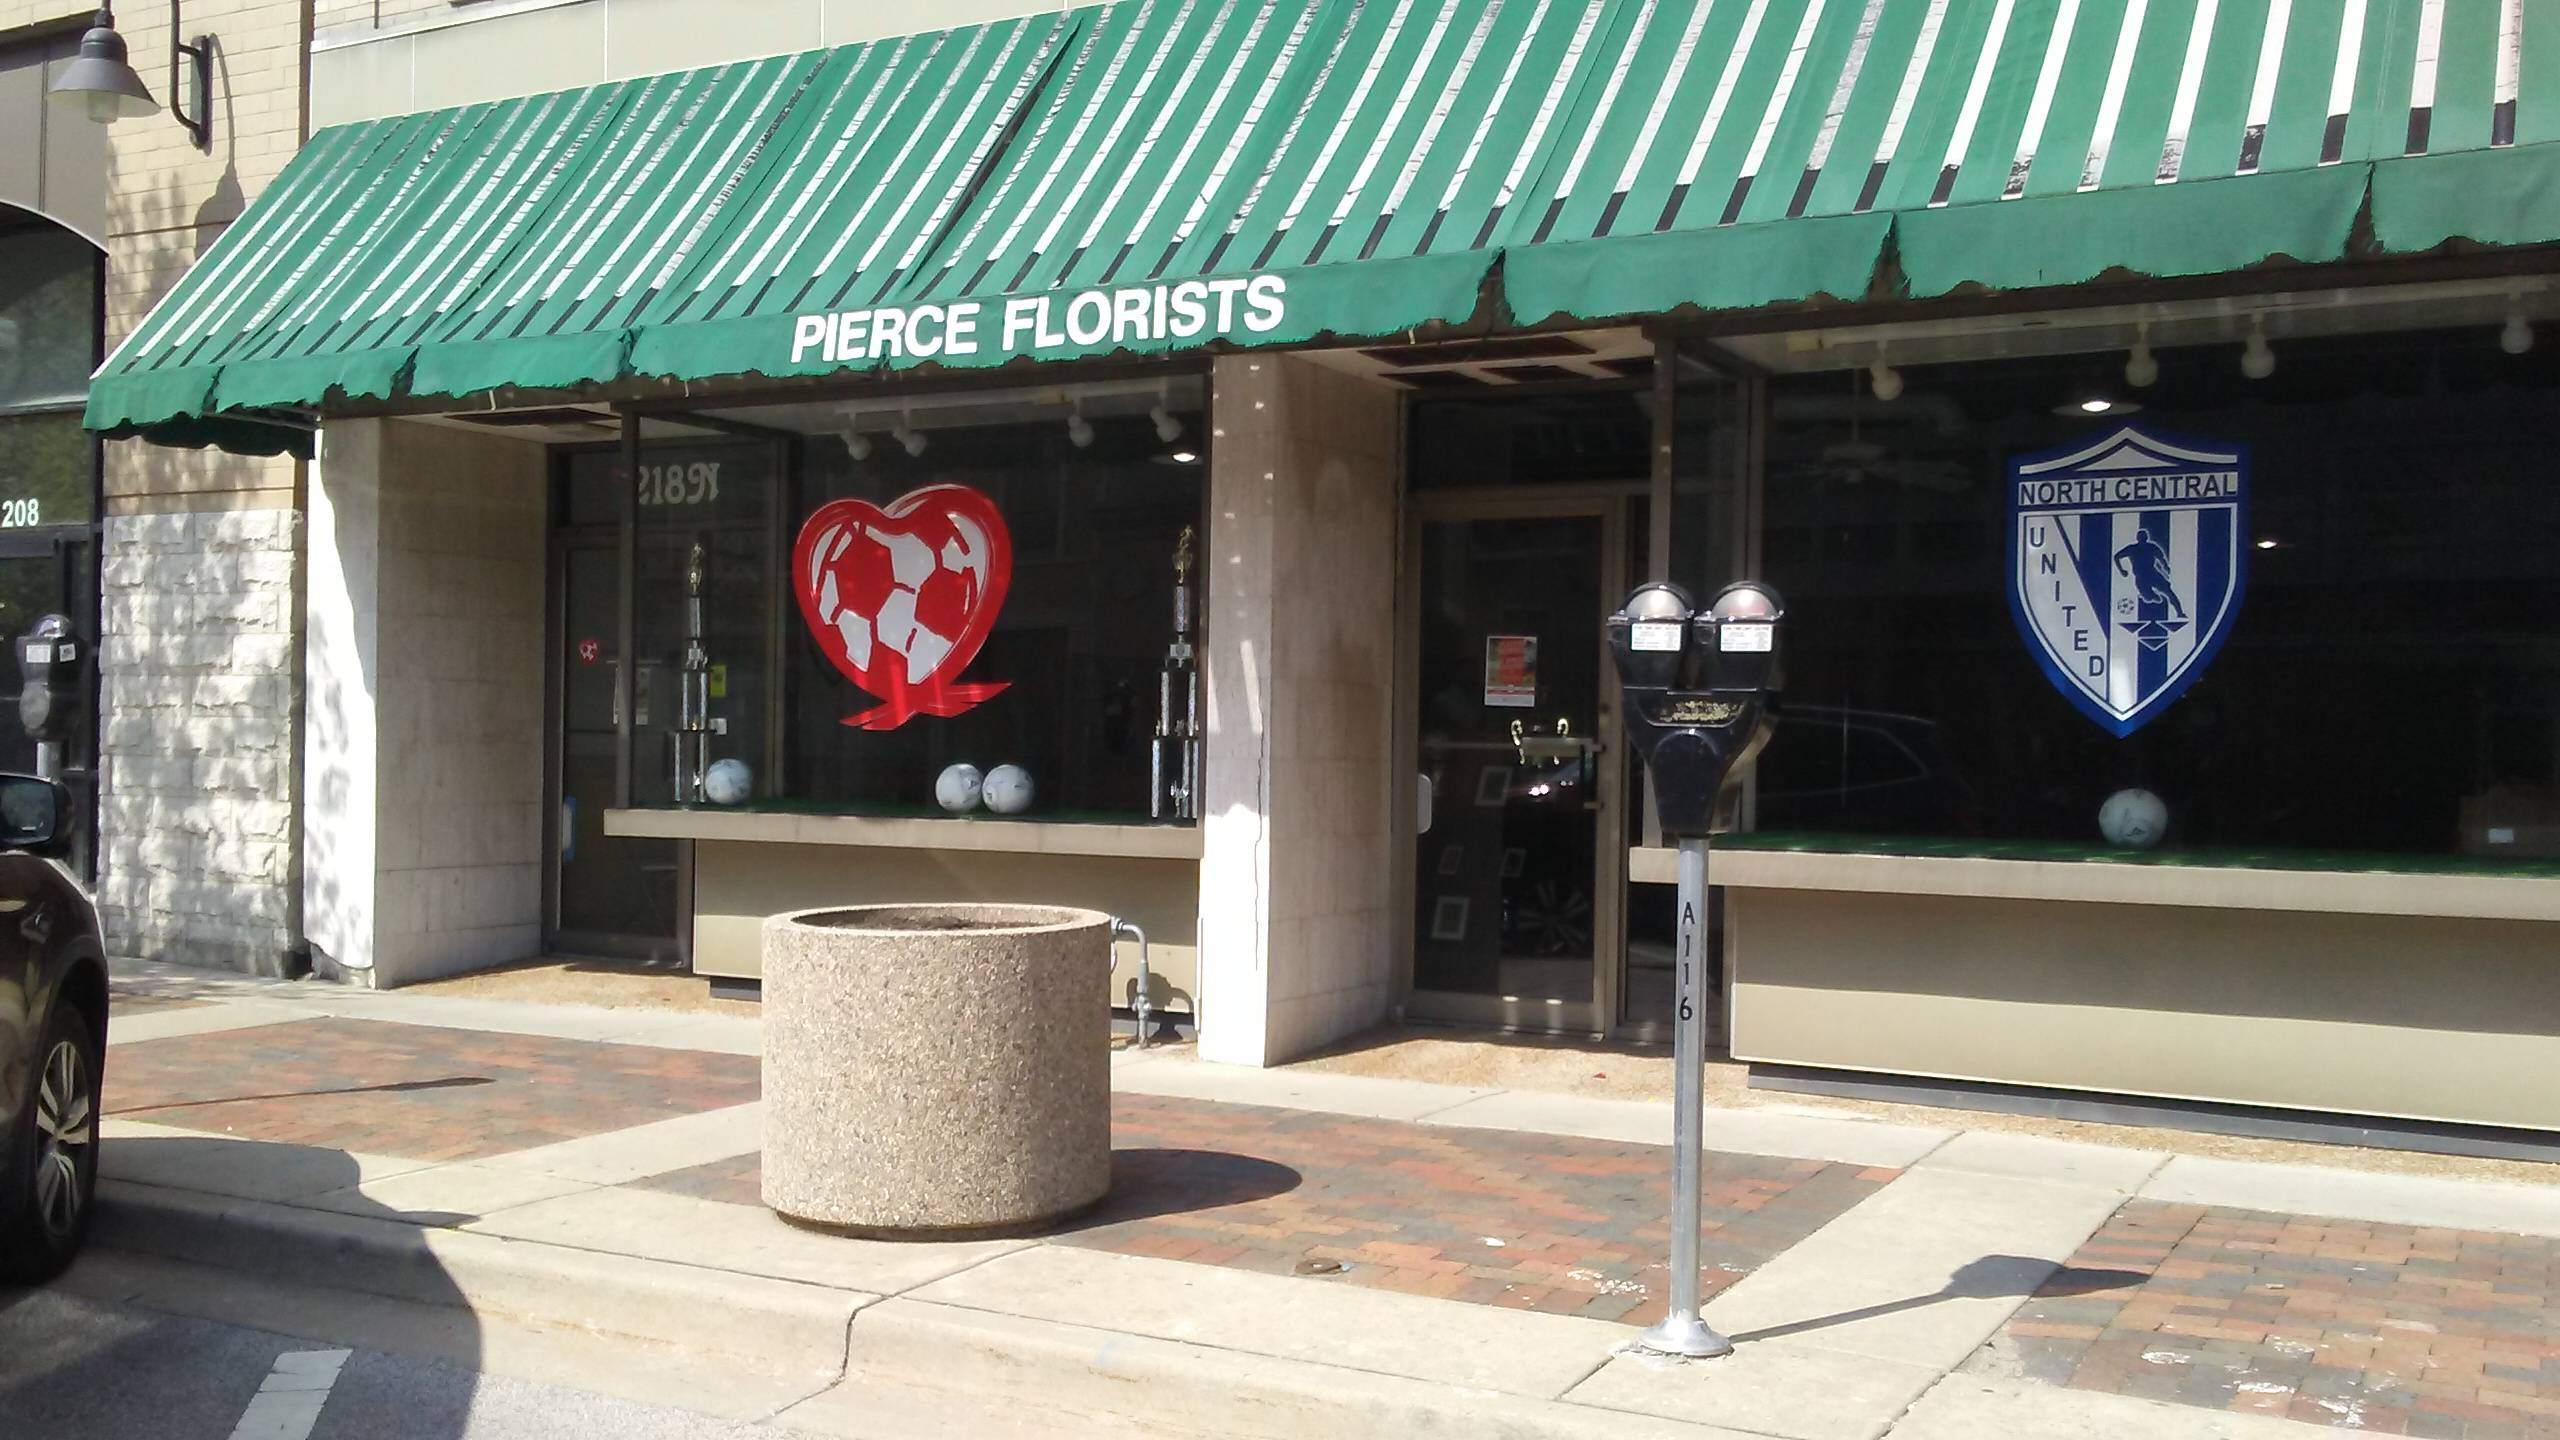 Heart of the City is now located at 218 Genesee St. in Waukegan in the building formerly known as Pierce Florists.Adrienne Wright